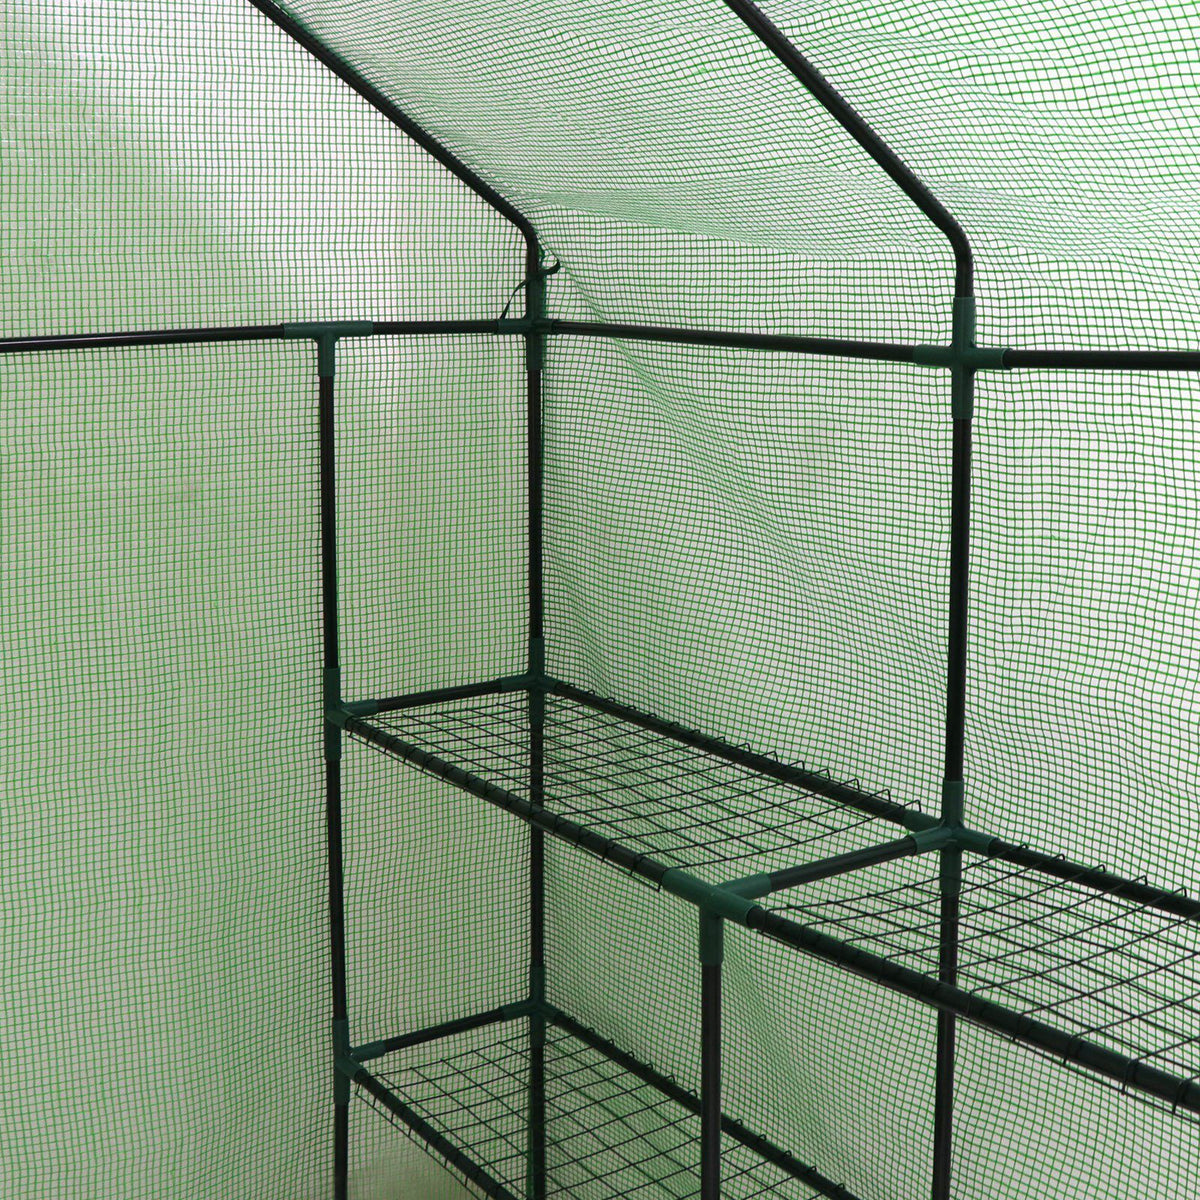 Large Walk-in Plant Greenhouse - CartUp.com